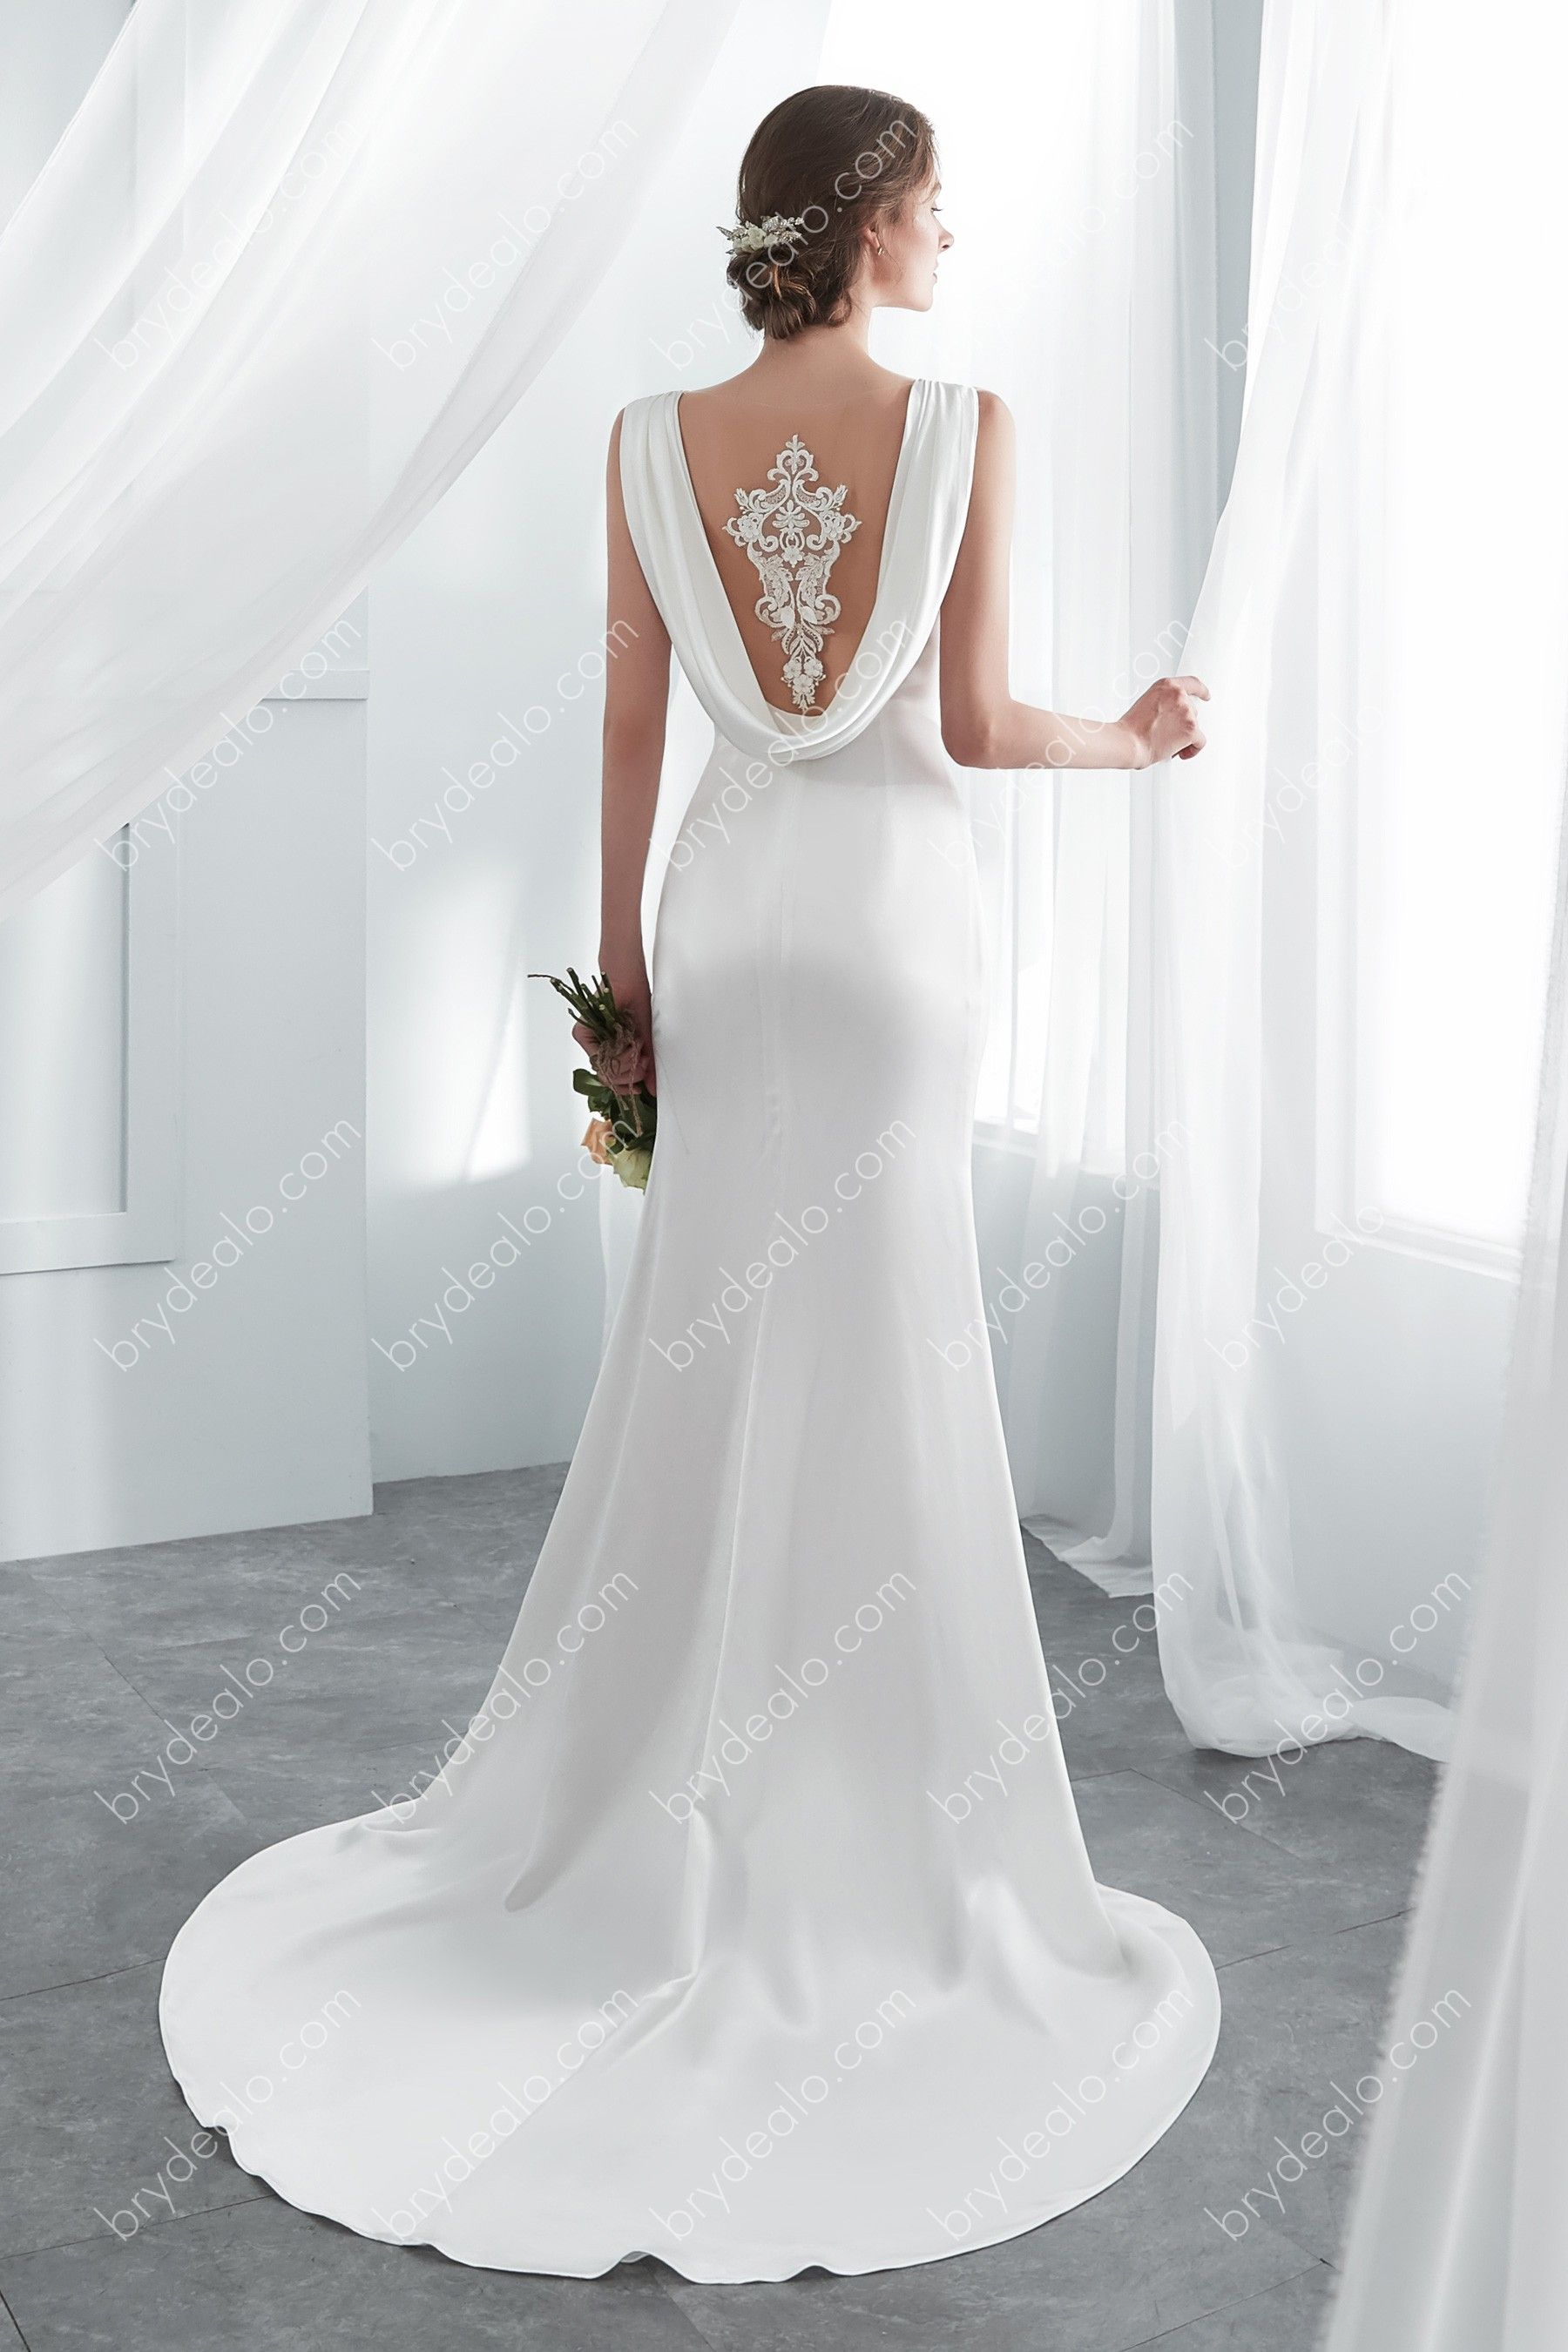 Elegant And Alluring This Classic Sleeveless Ivory Long Wedding Dress Features Its Luxury Sof Bridal Gowns Mermaid Wedding Gowns Mermaid Mermaid Wedding Dress [ 2700 x 1800 Pixel ]